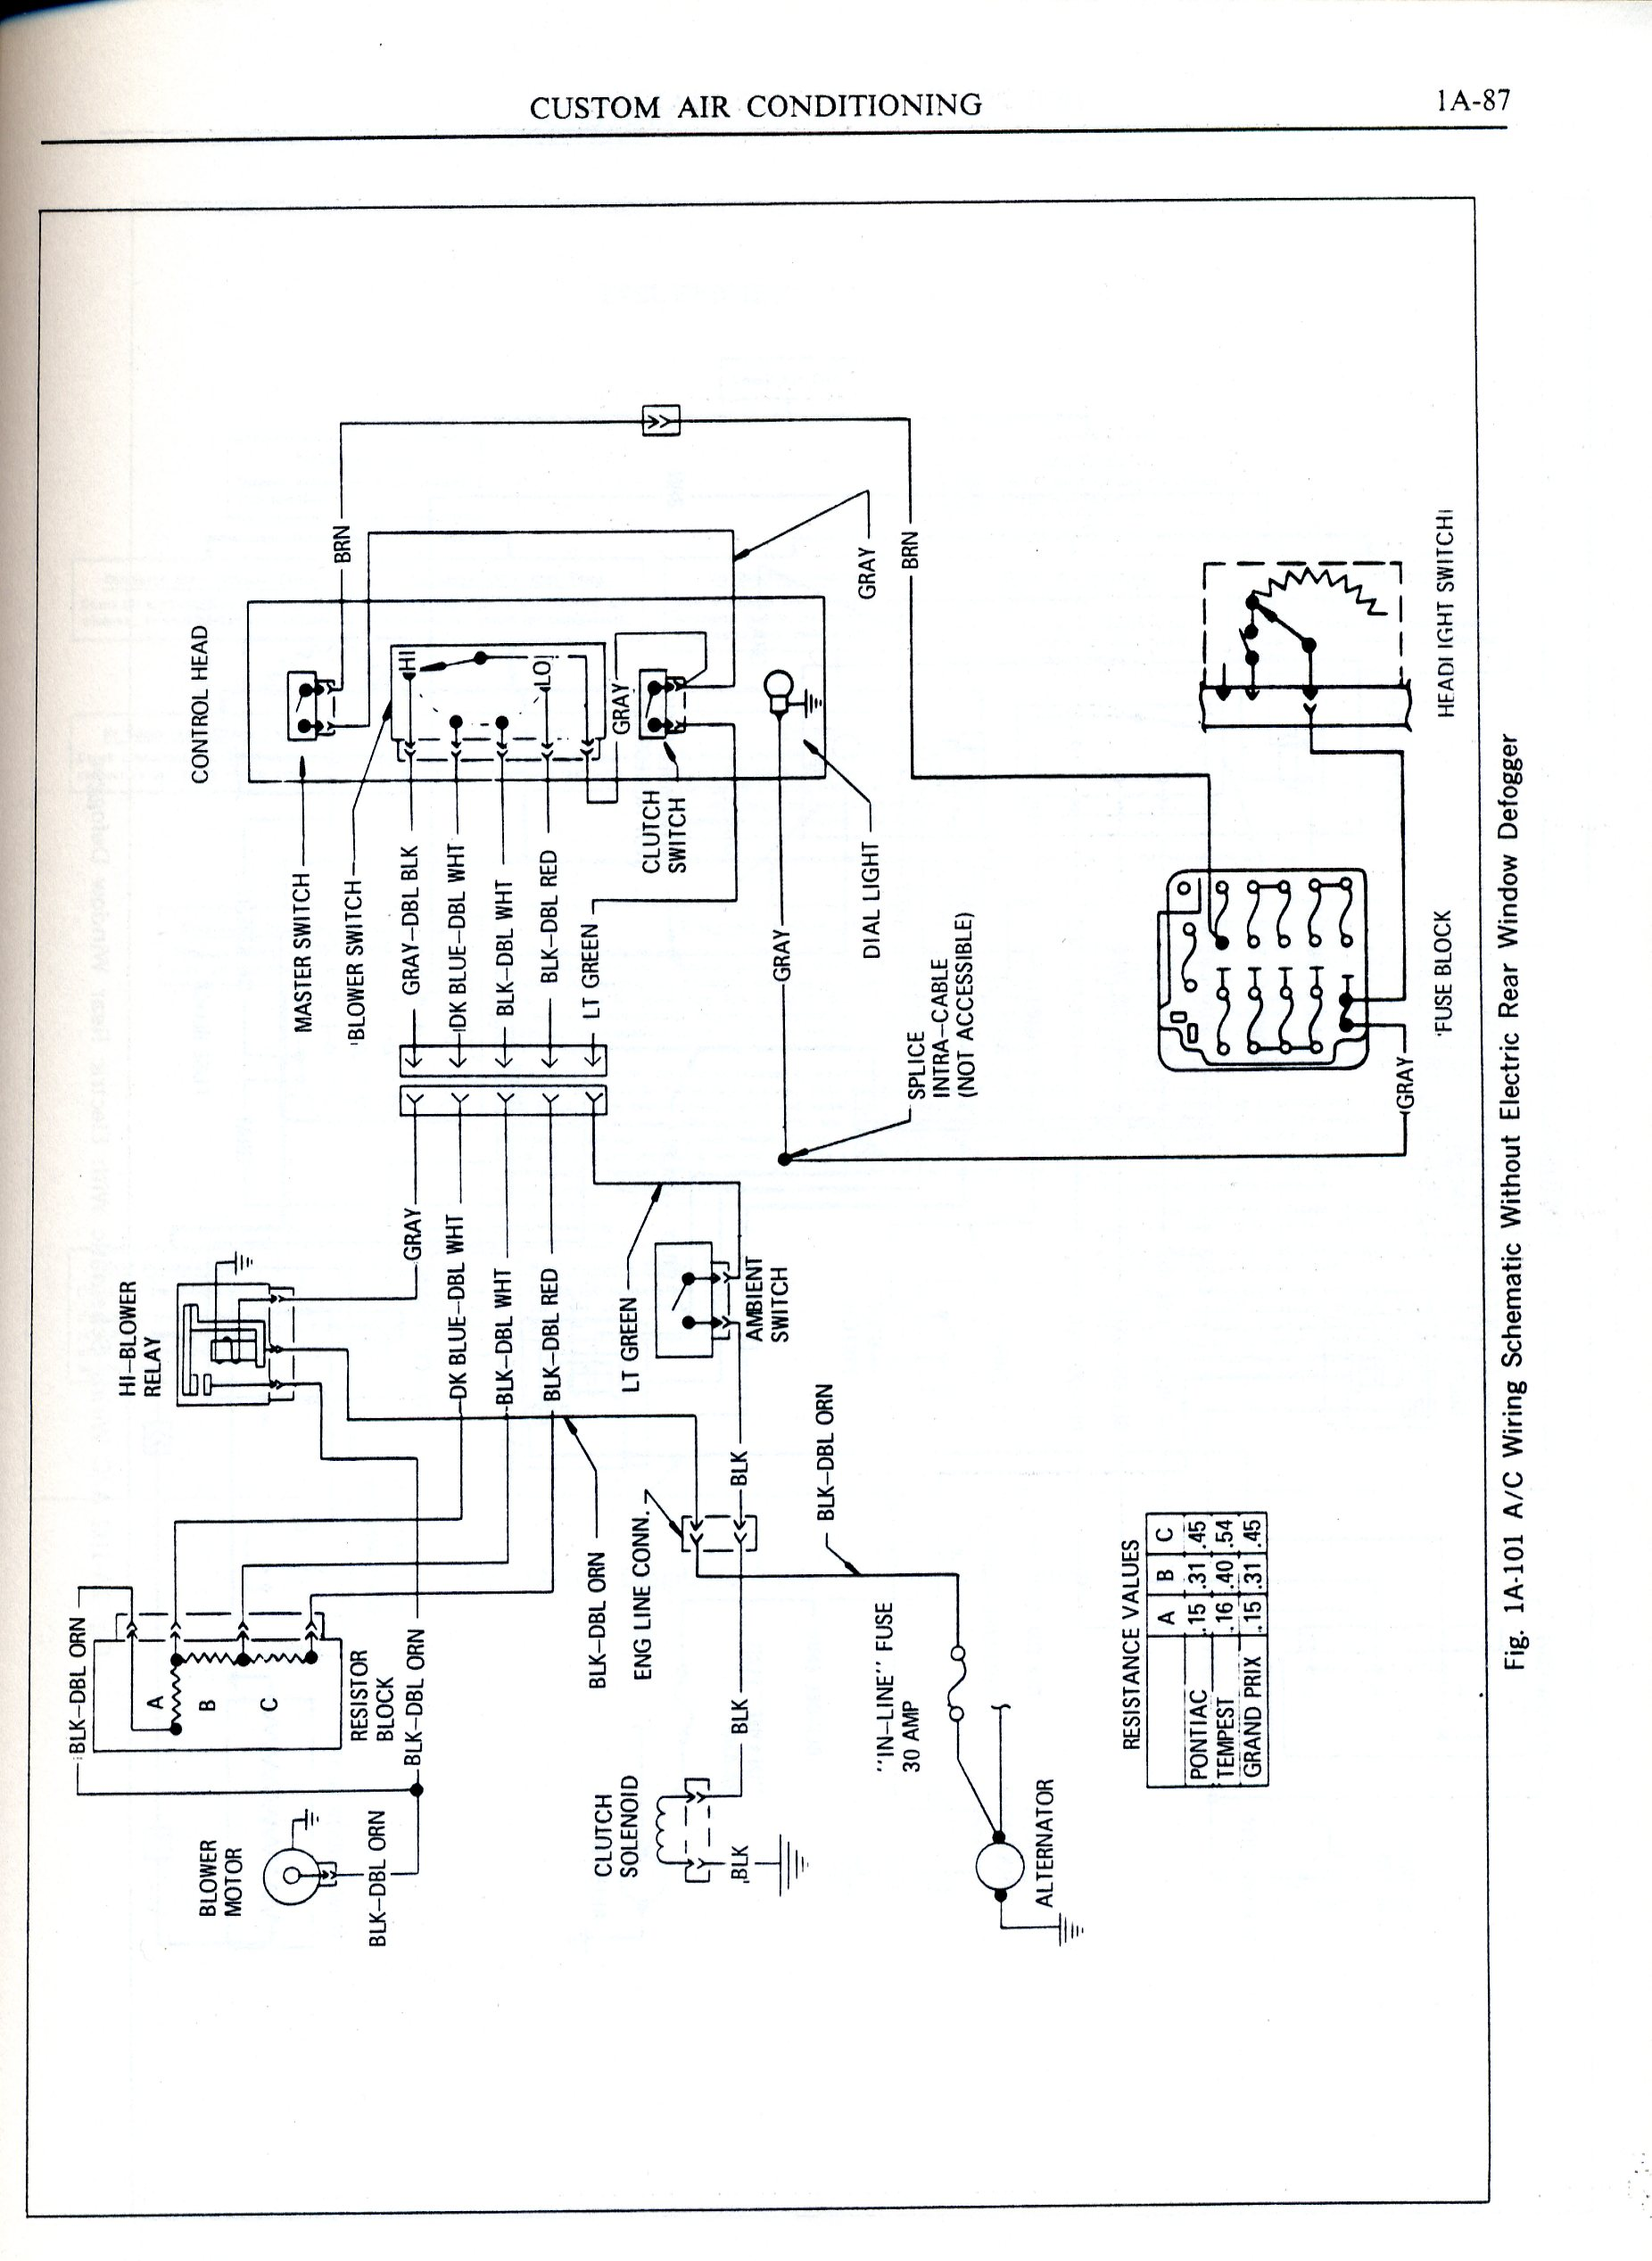 wiring diagram pontiac lemans wiring wiring diagrams online 1970 lemans wiring diagram pontiac gto forum